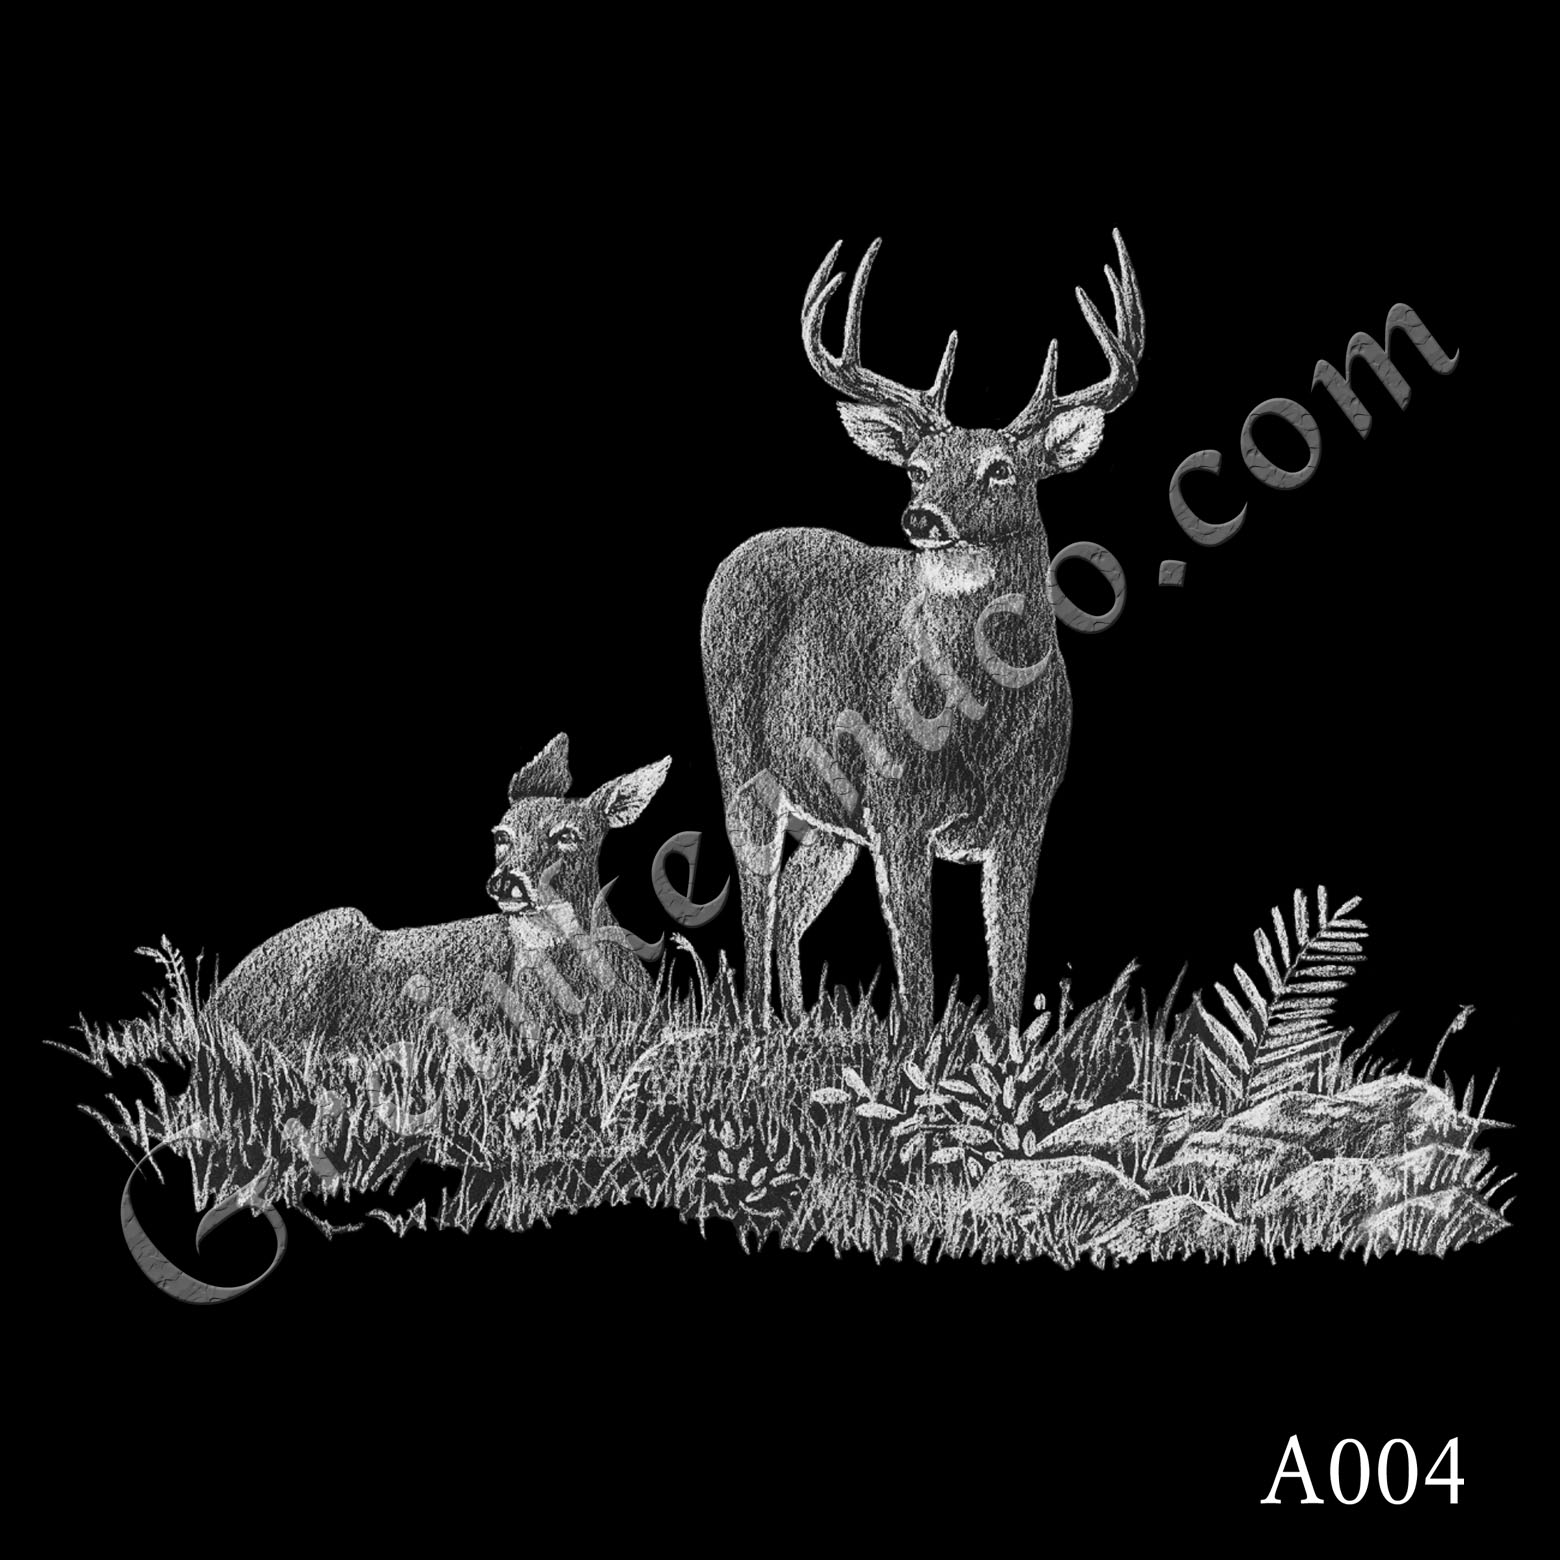 A004 - Two Deer